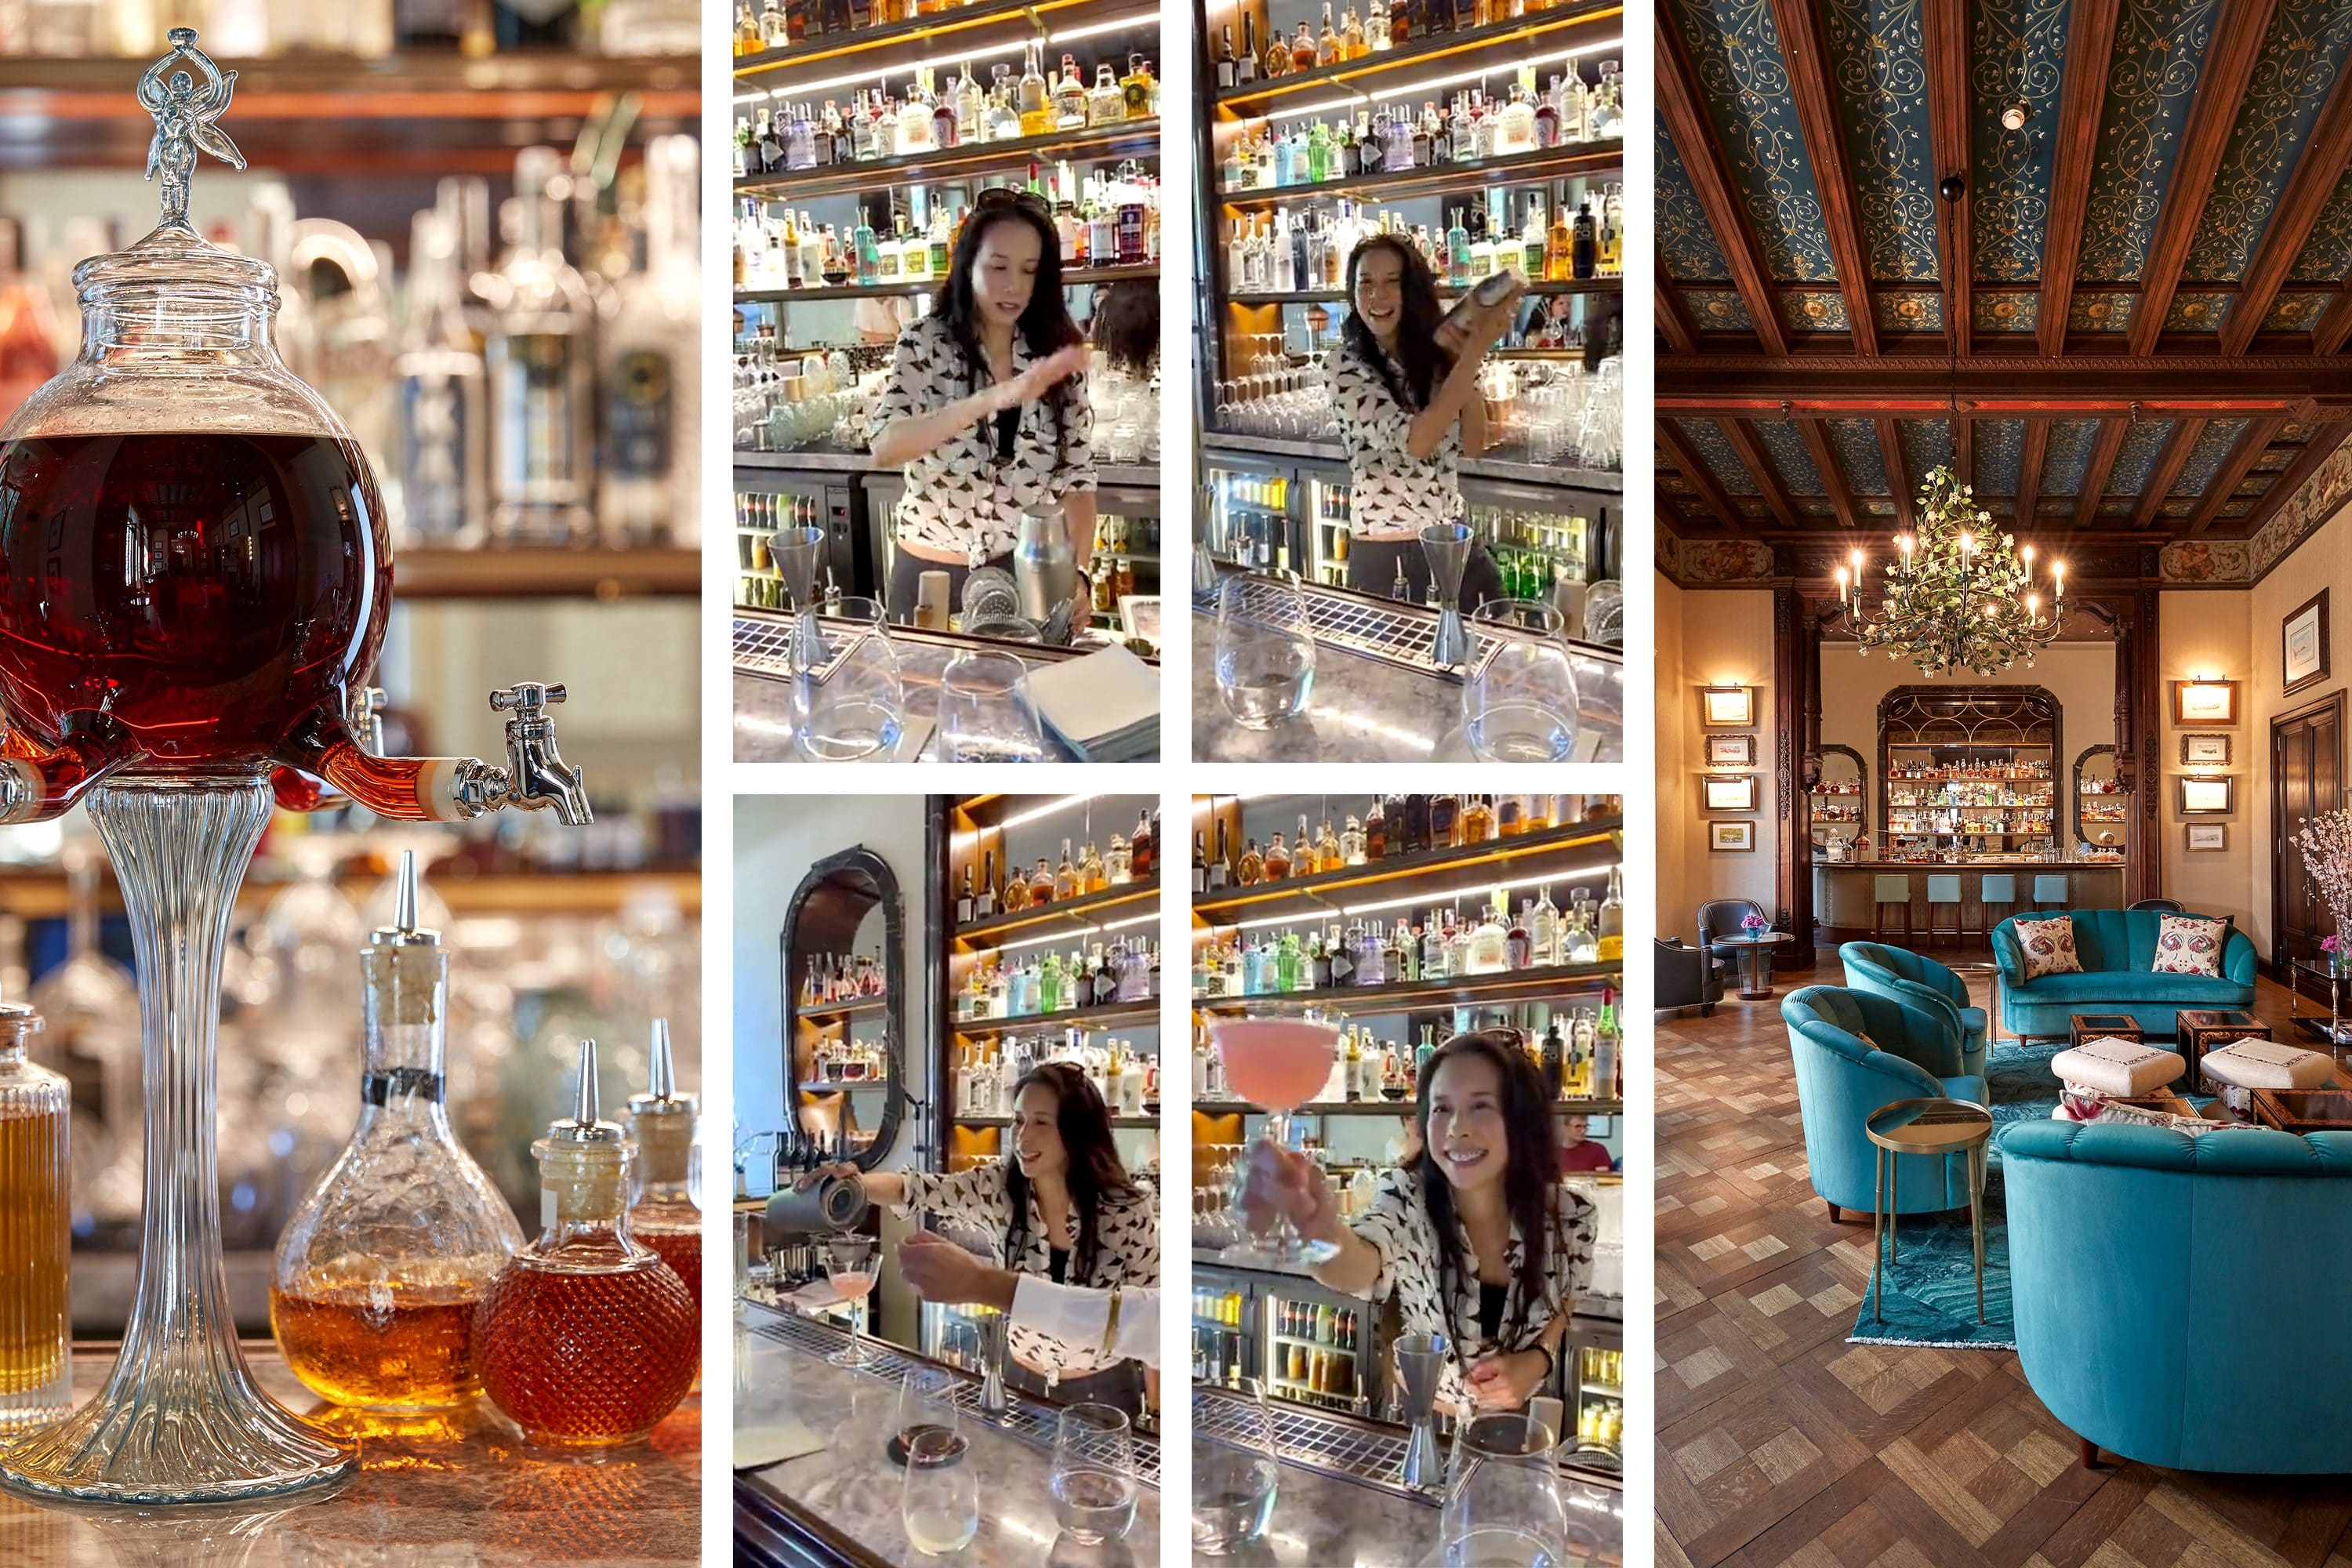 Triptych of images showing Karen Mok making cocktails at the bar